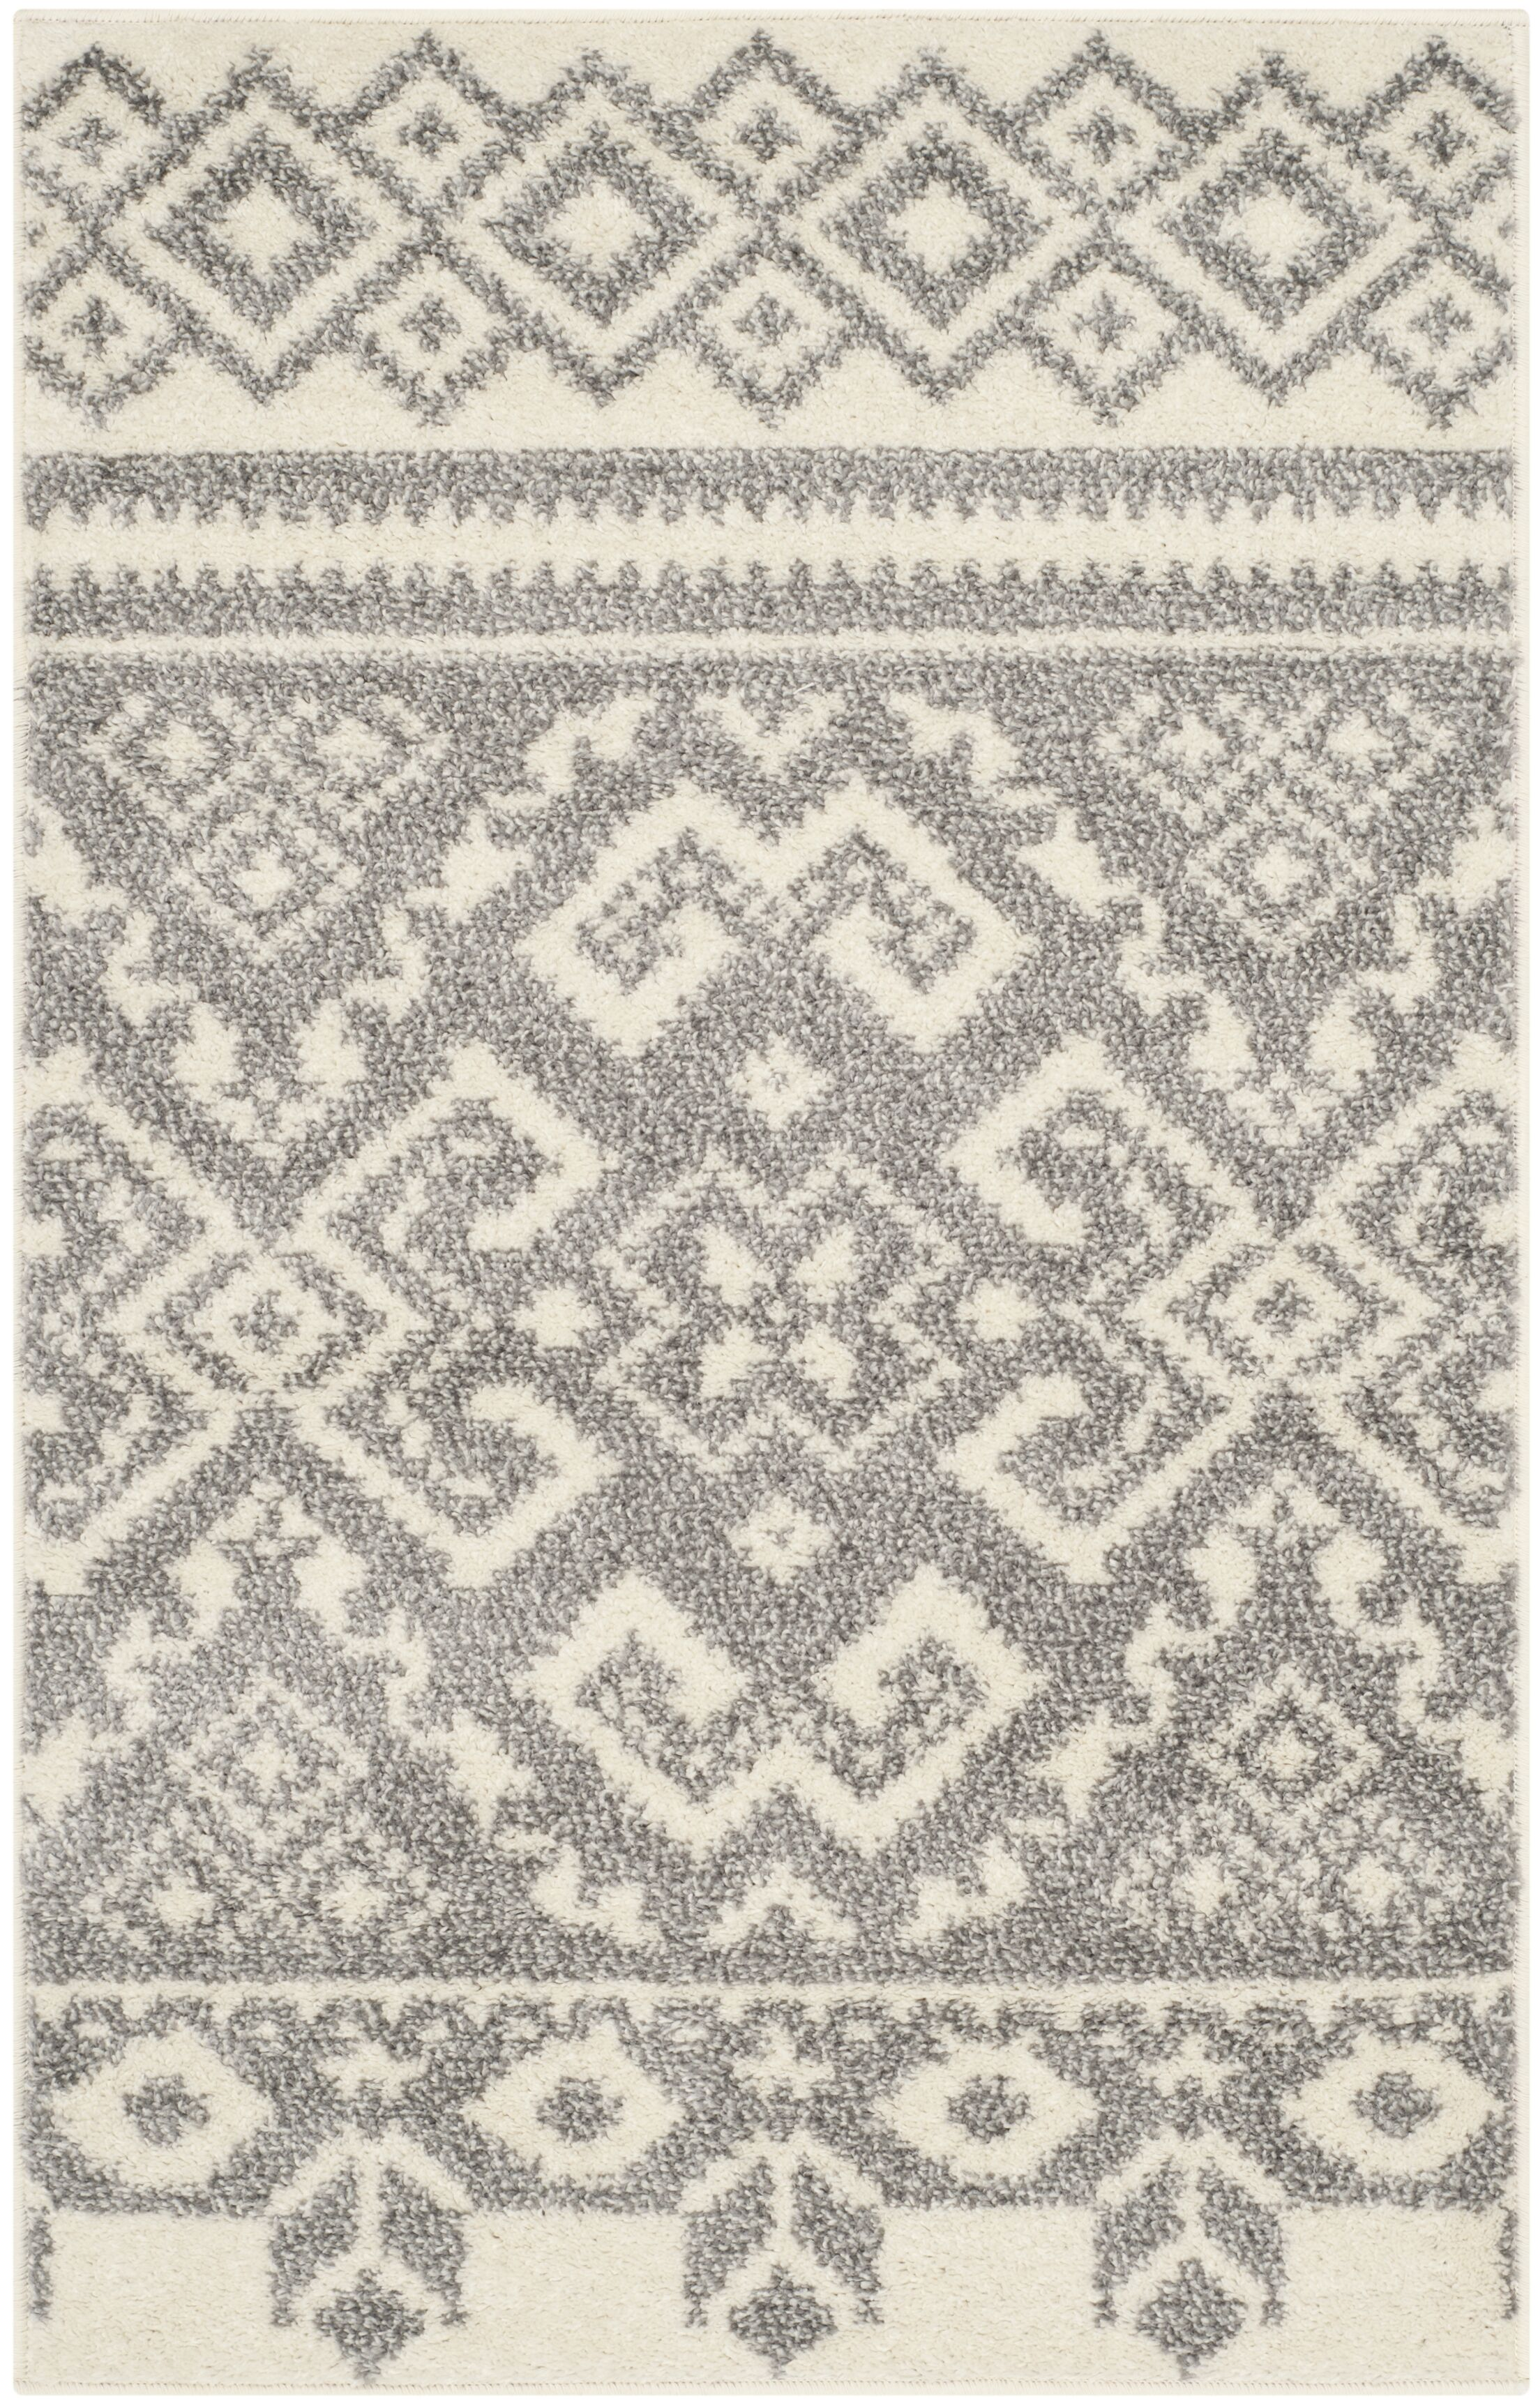 St. Ann Highlands Beige/Silver Area Rug Rug Size: Rectangle 6' x 9'